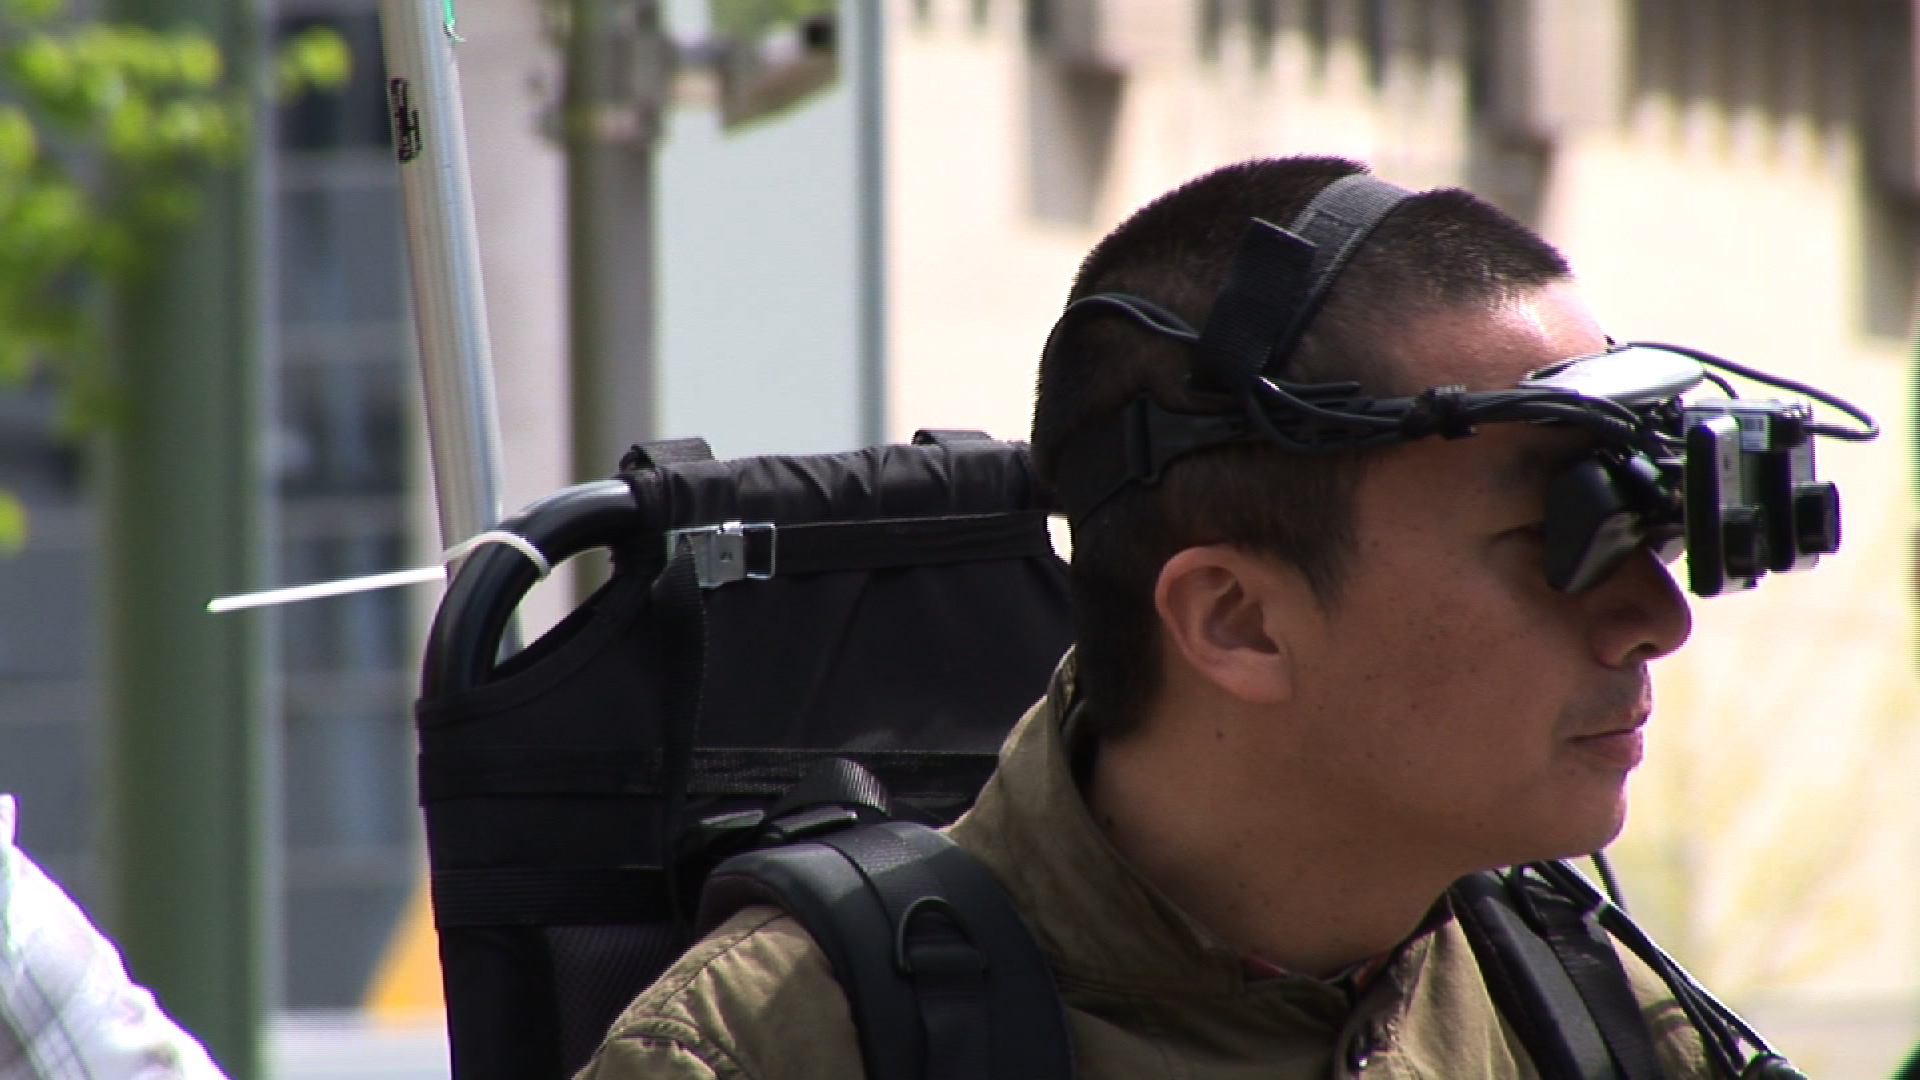 man wearing augmented reality headset